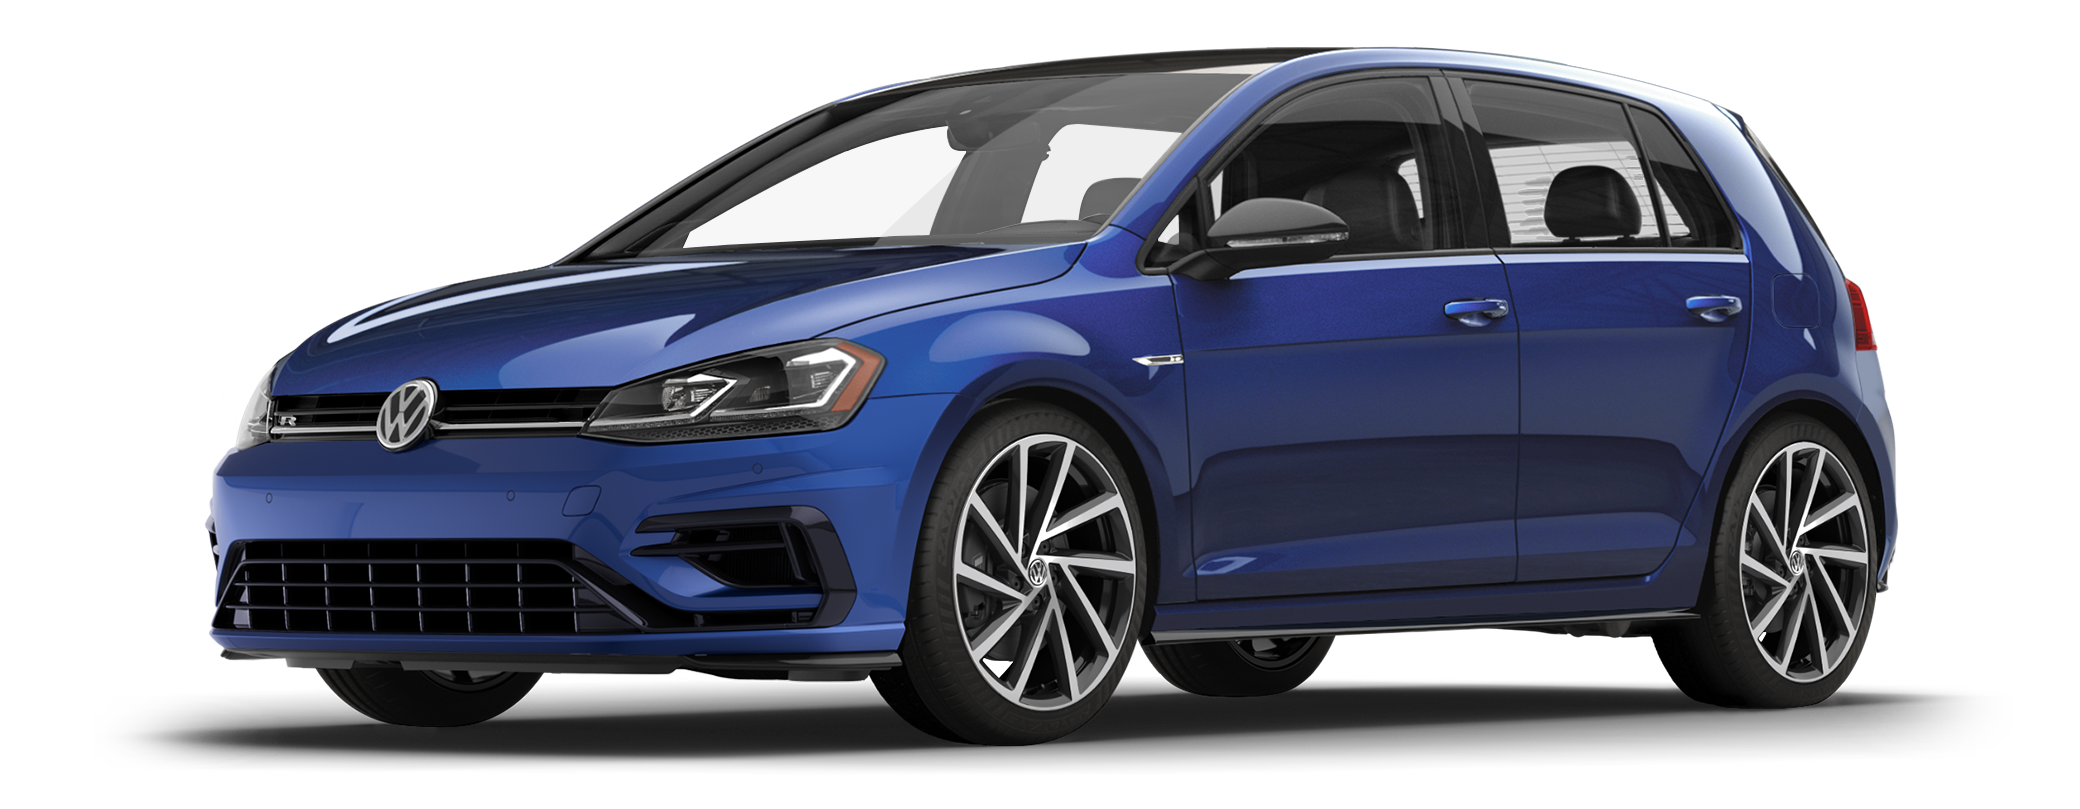 Cherry Hill Vw Service >> 2018 Volkswagen Golf R Incentives, Specials & Offers in ...